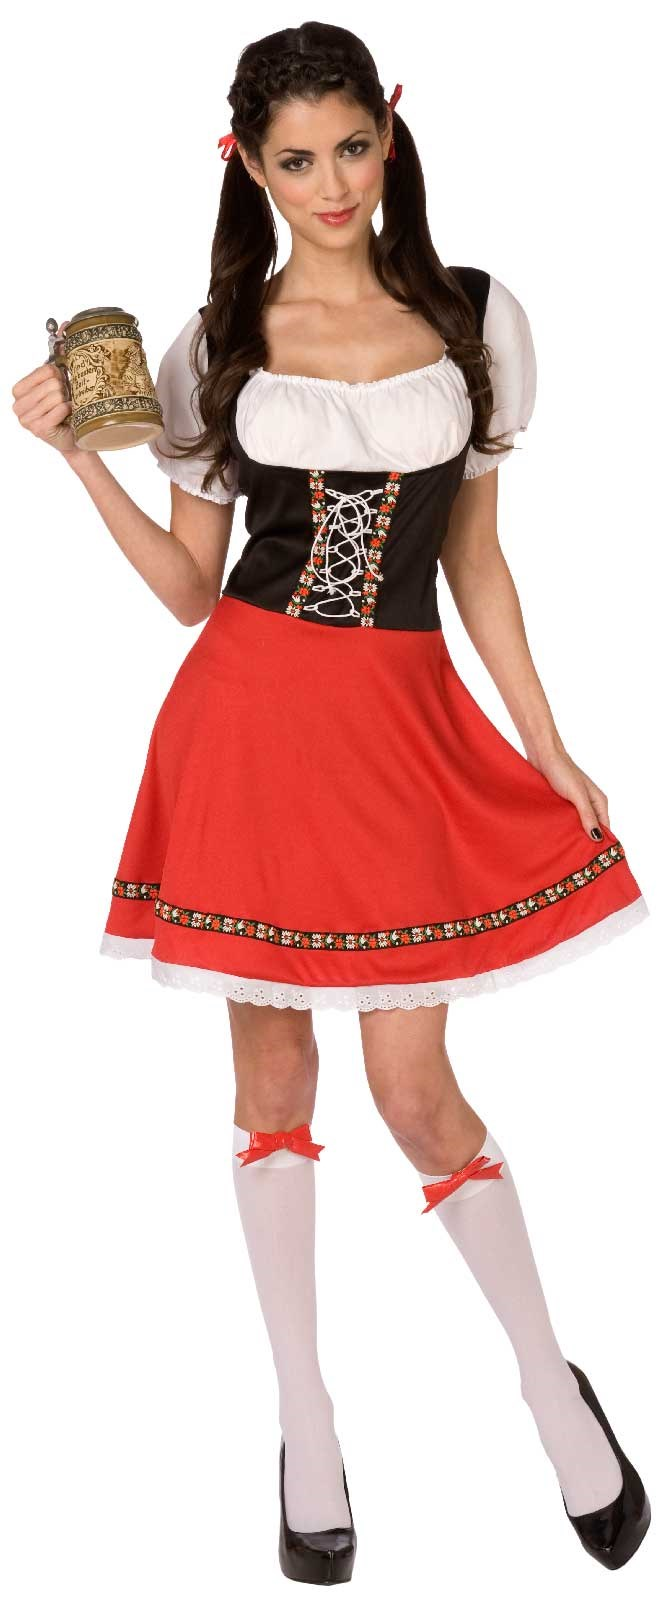 COMPLIMENTS OF THE SEASON German-girl-dress-adult-costume-bc-806515